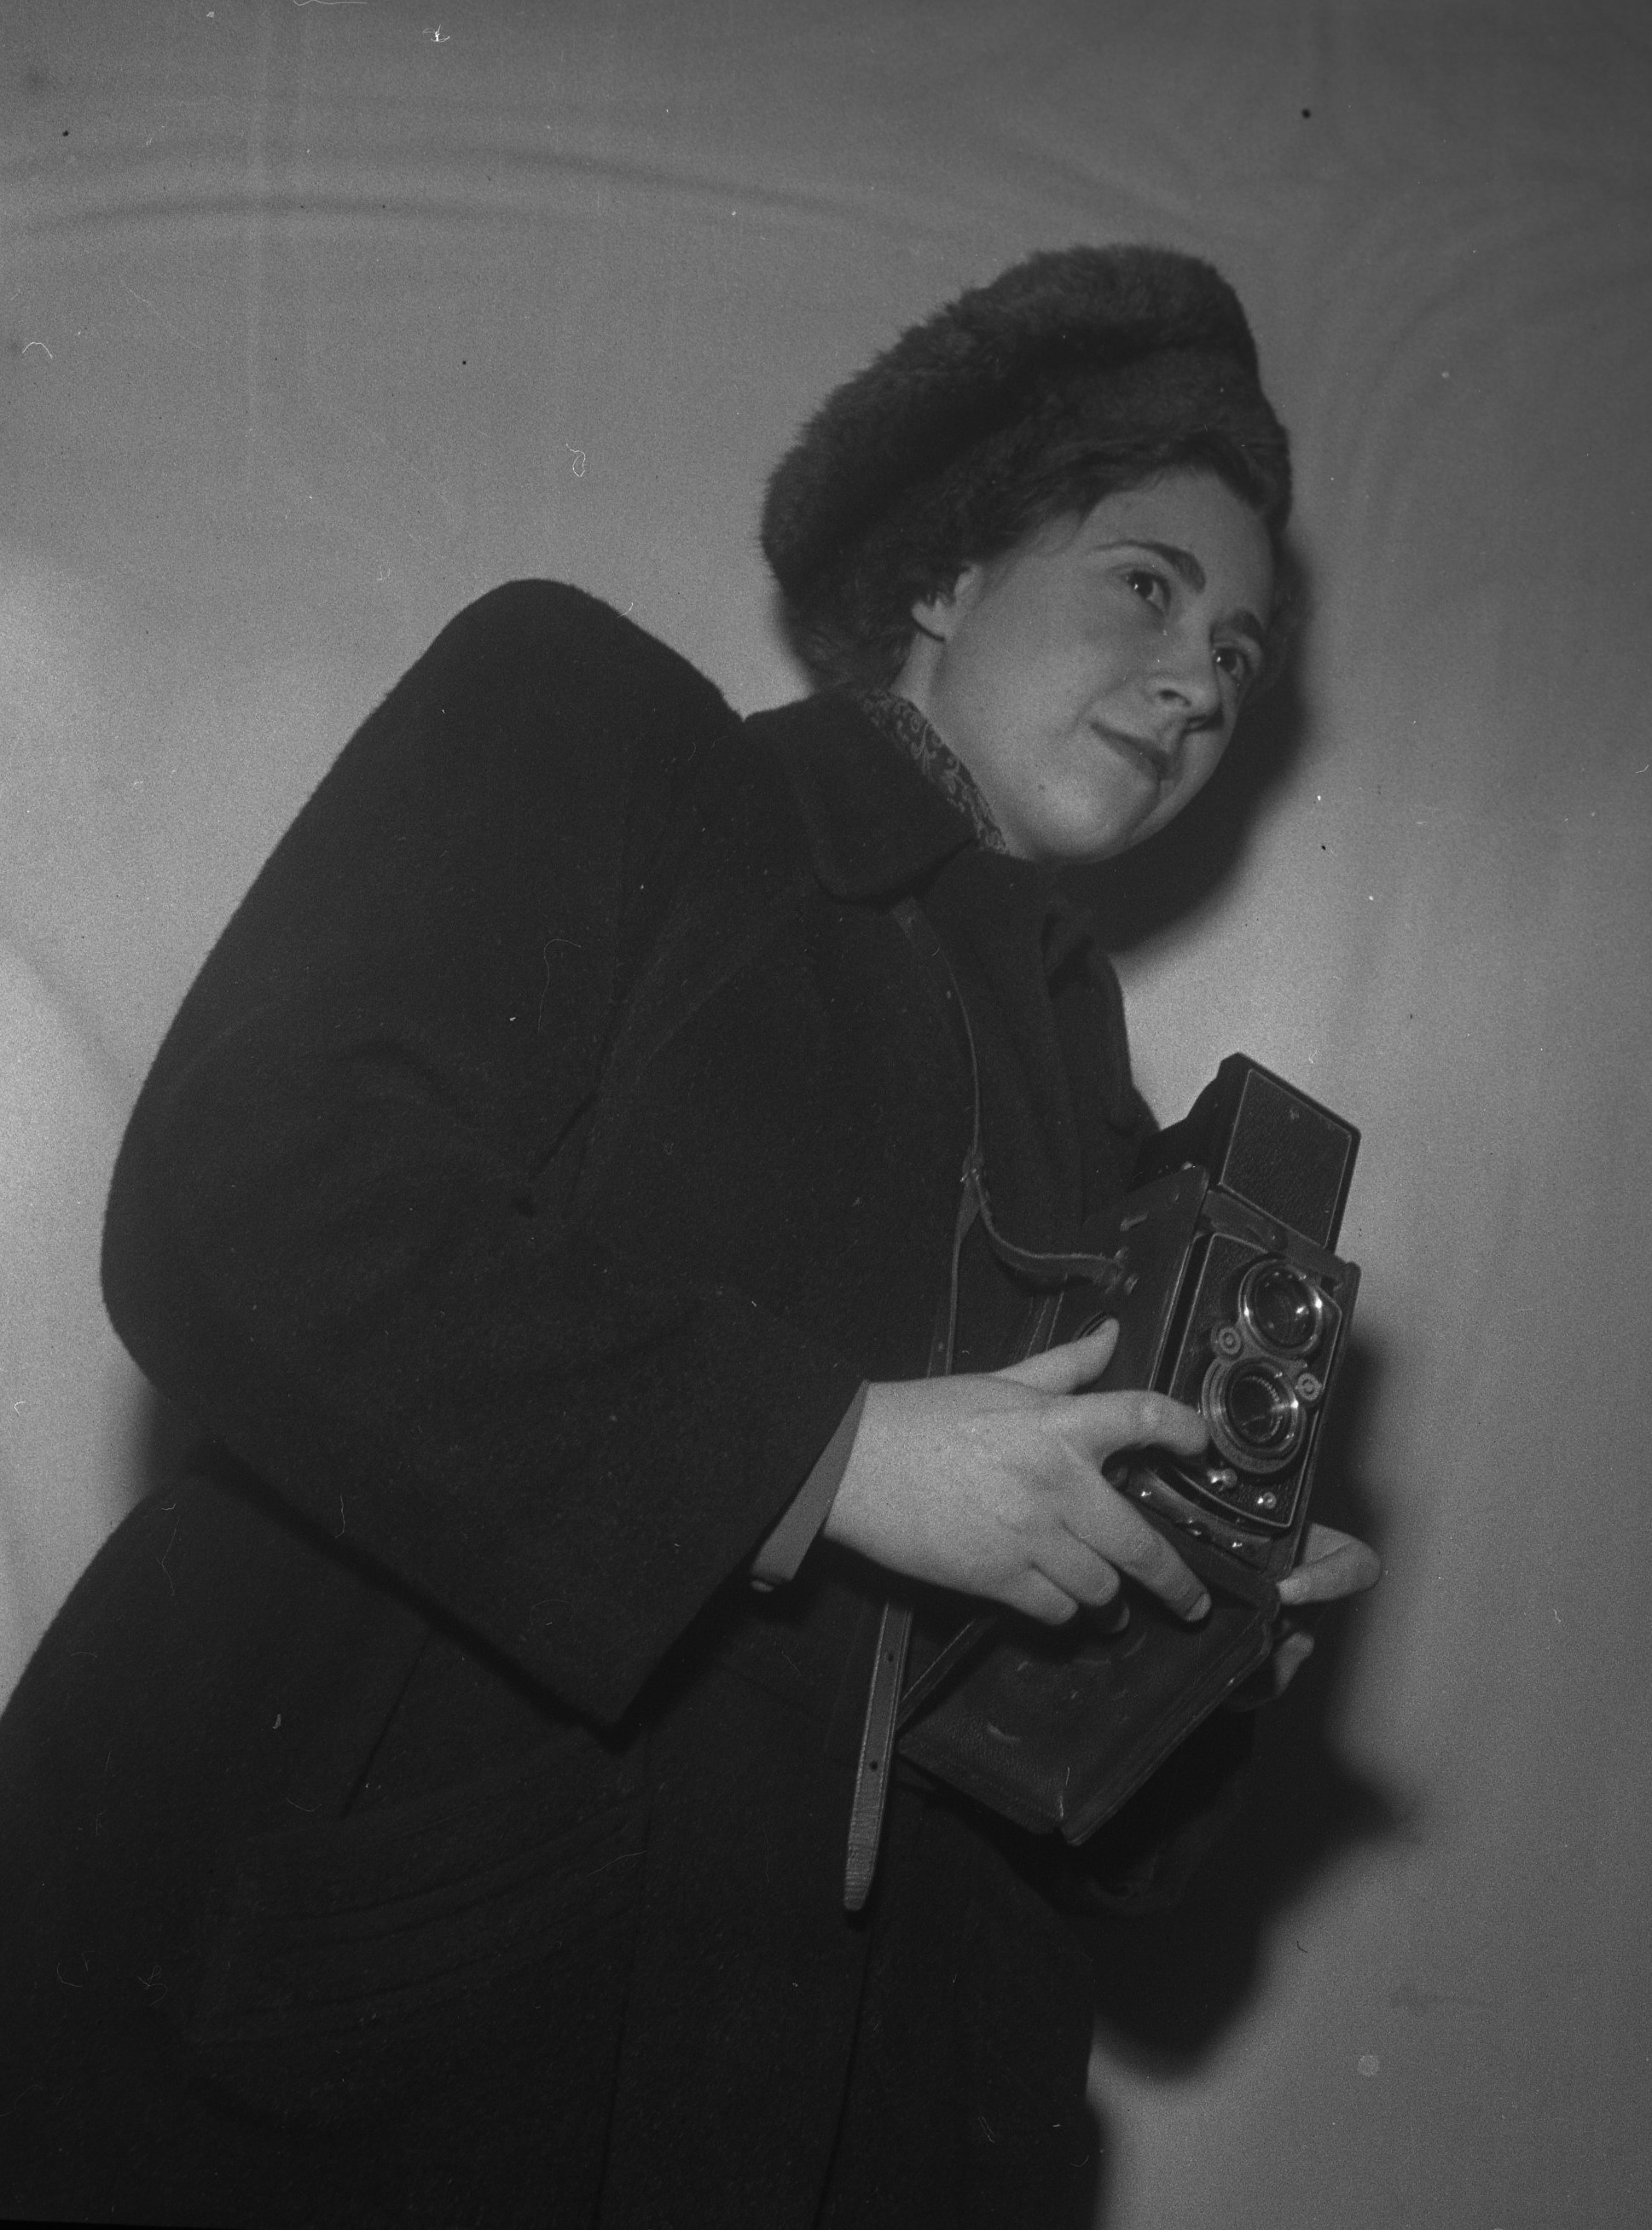 Ellen Dahlberg with camera. Photographer and year unknown (Kulturen in Lund)